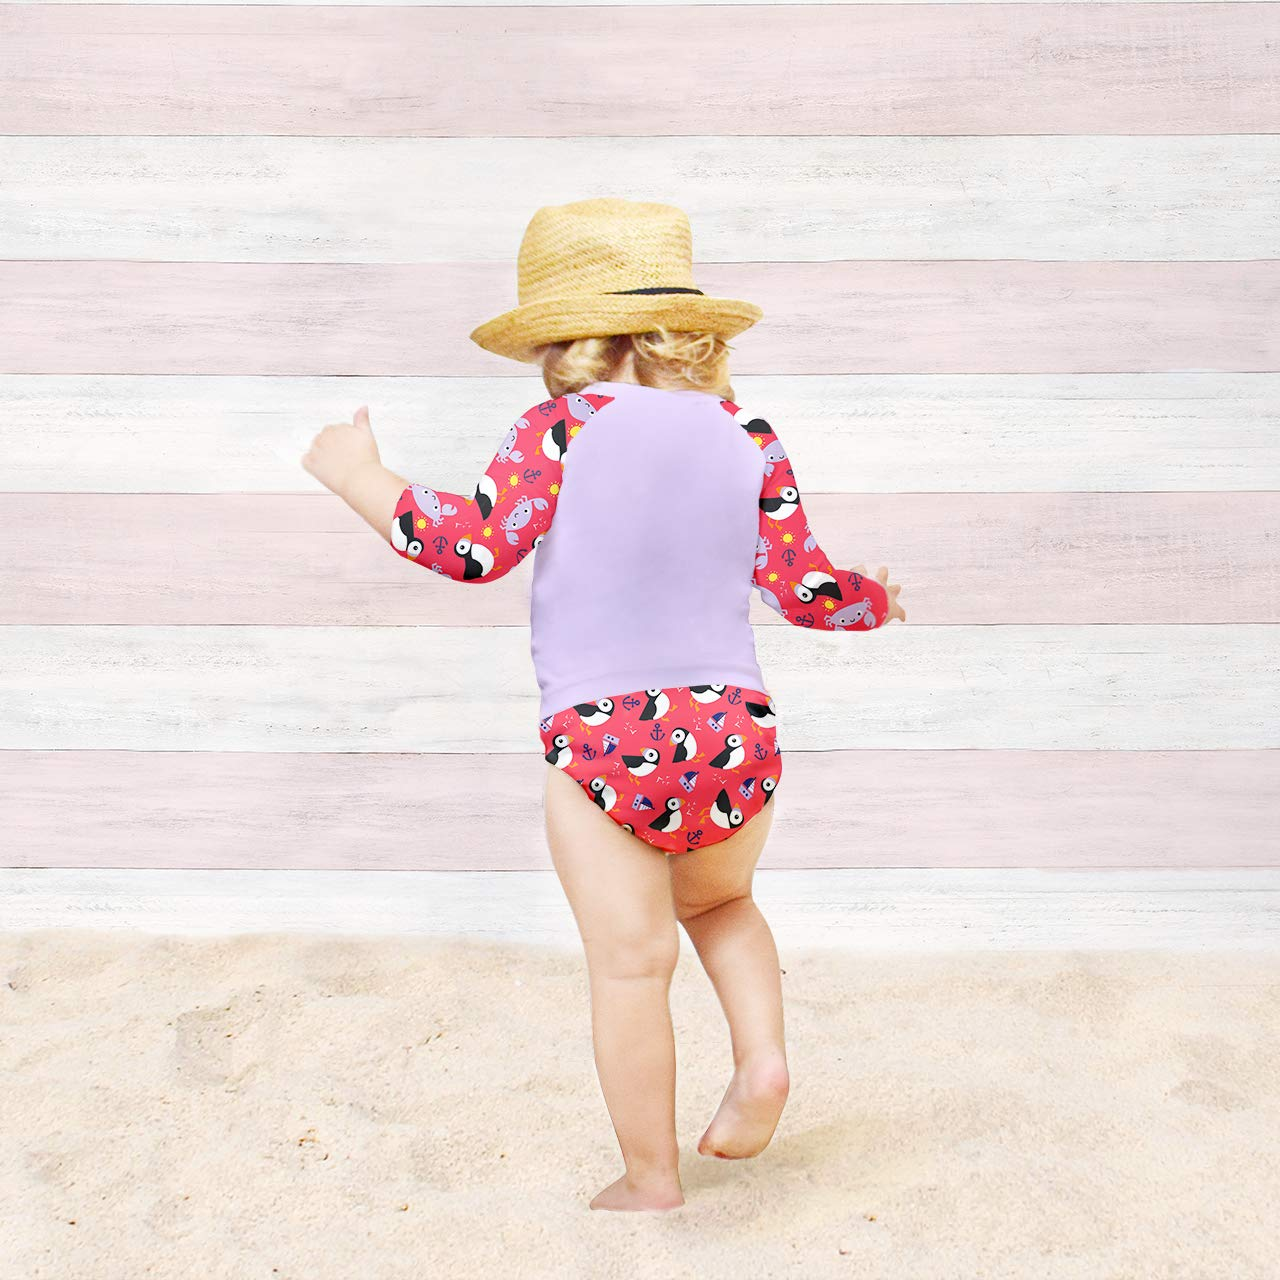 Nautical Bambino Mio Swim Rashguard 2 Years+ Extra Large